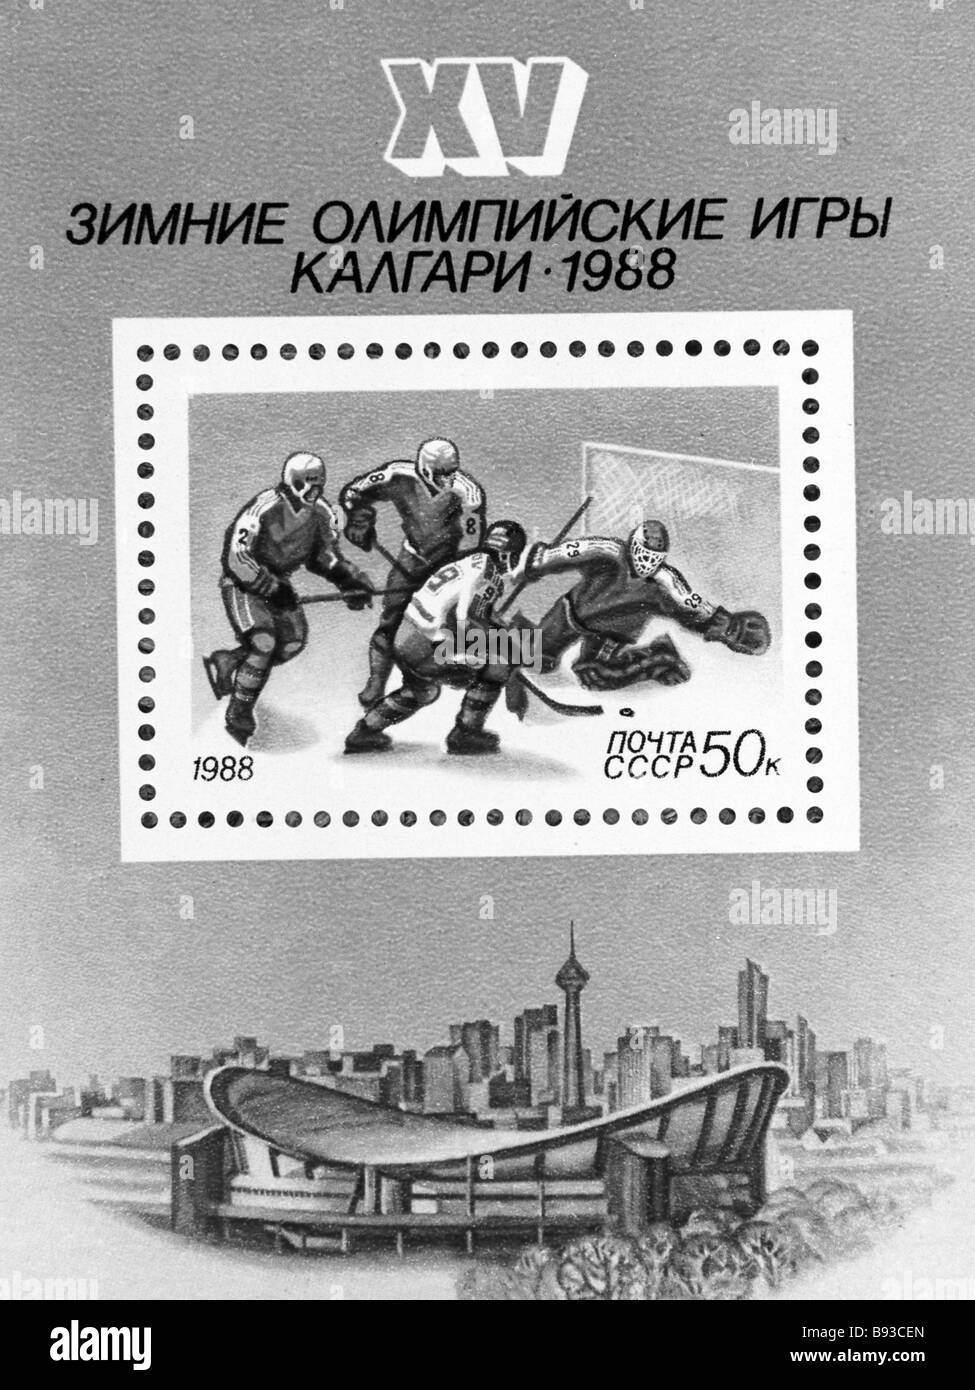 A Soviet postal stamp dedicated to the 15th Winter Olympics in Calgary - Stock Image